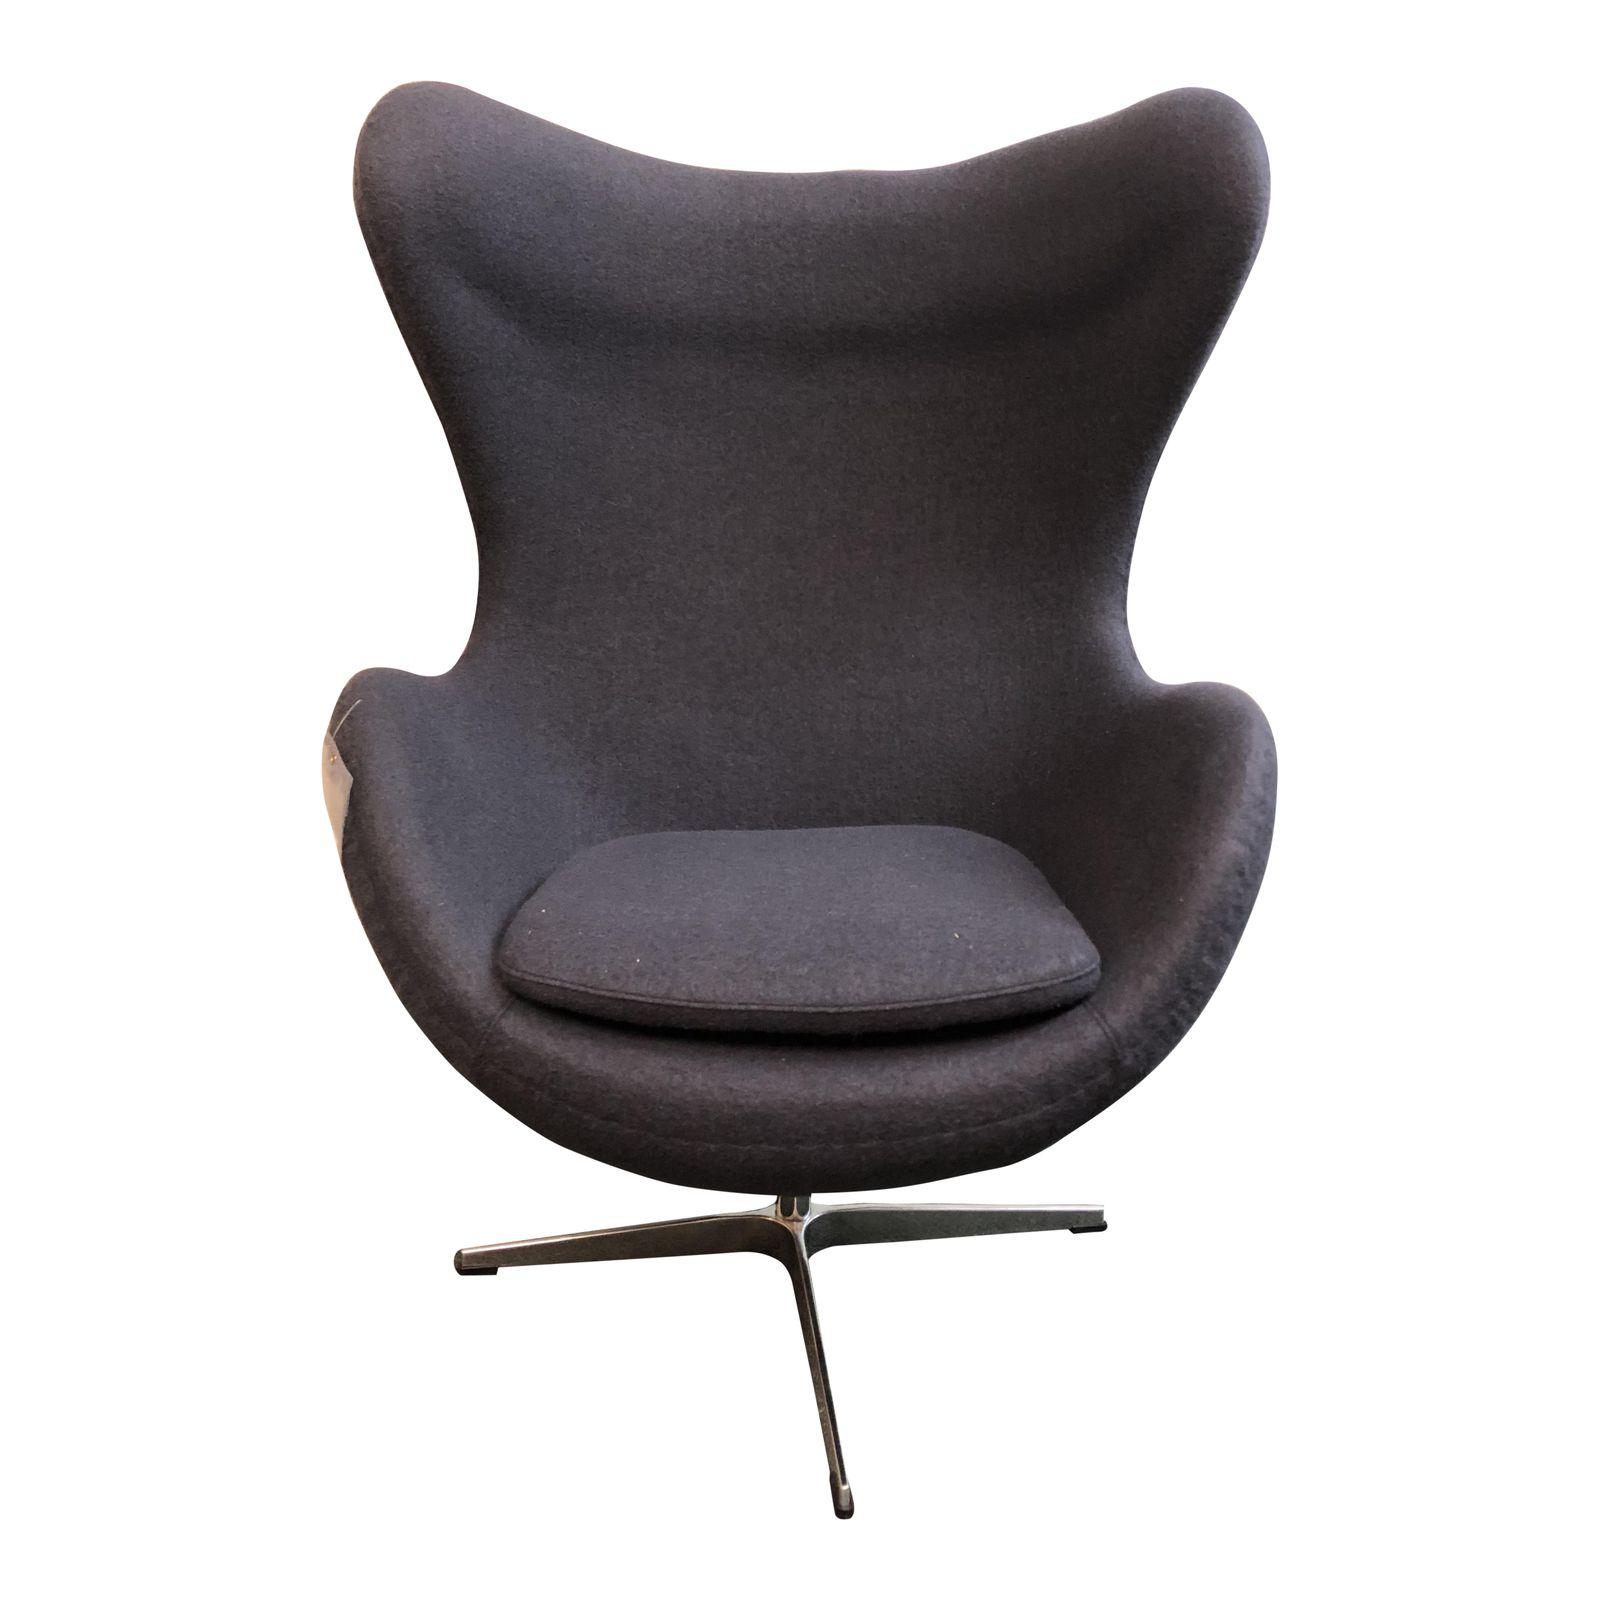 new blue gray wool egg chair original price 1 design plus gallery. Black Bedroom Furniture Sets. Home Design Ideas